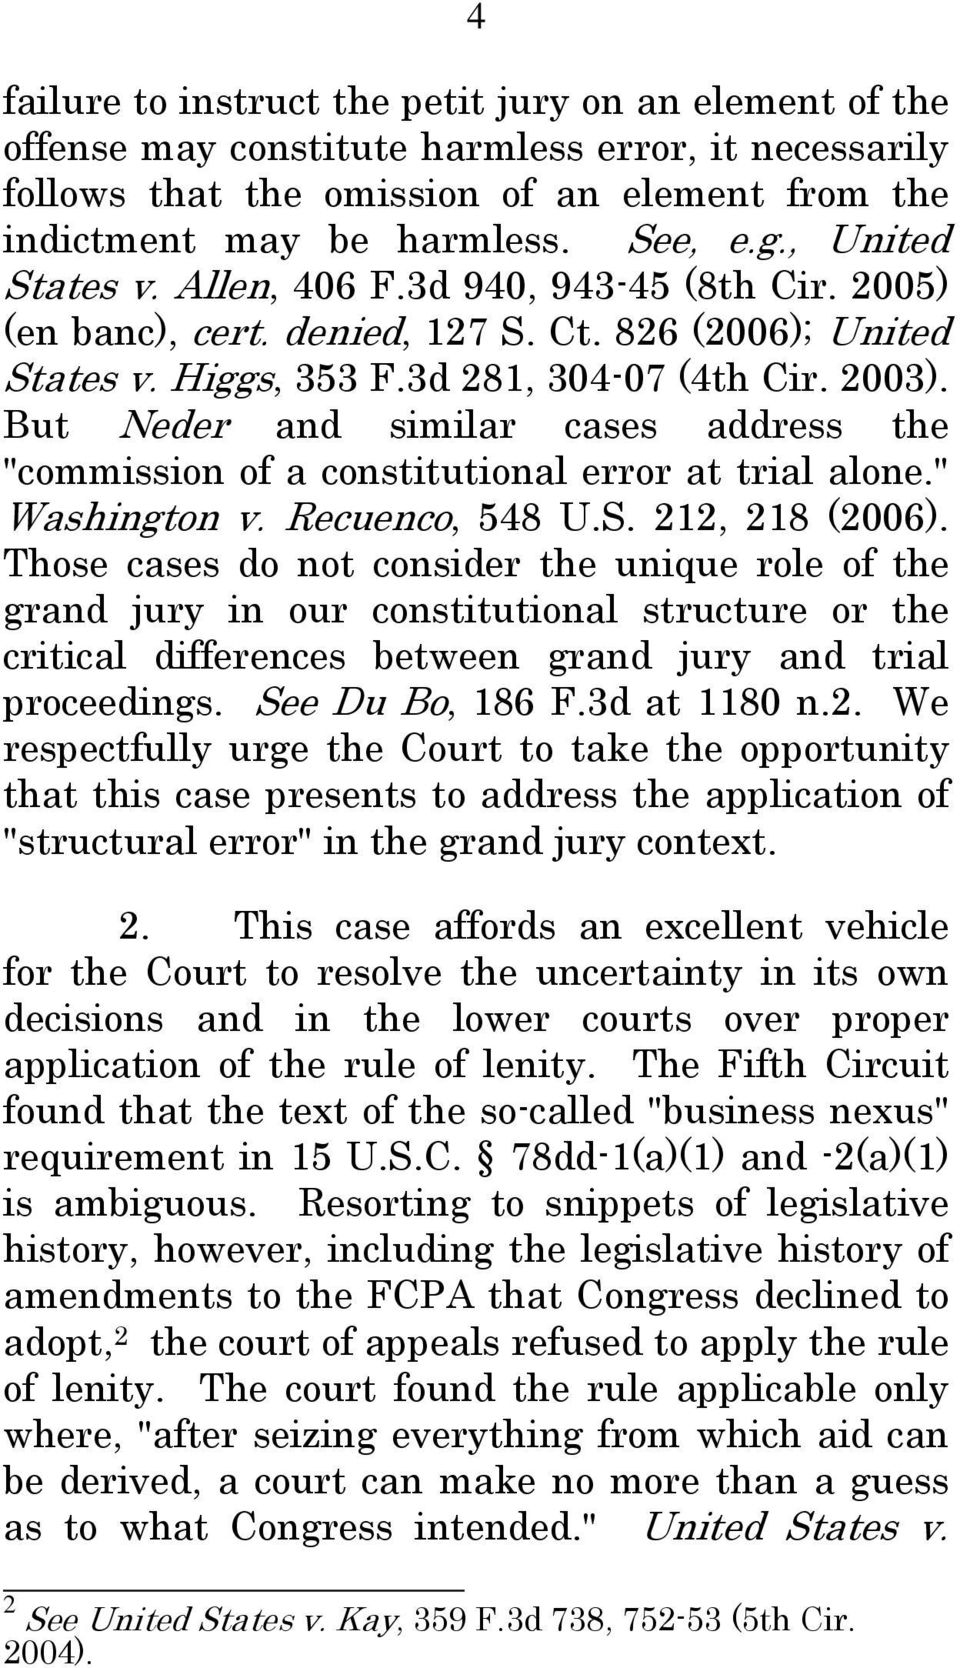 "But Neder and similar cases address the ""commission of a constitutional error at trial alone."" Washington v. Recuenco, 548 U.S. 212, 218 (2006)."